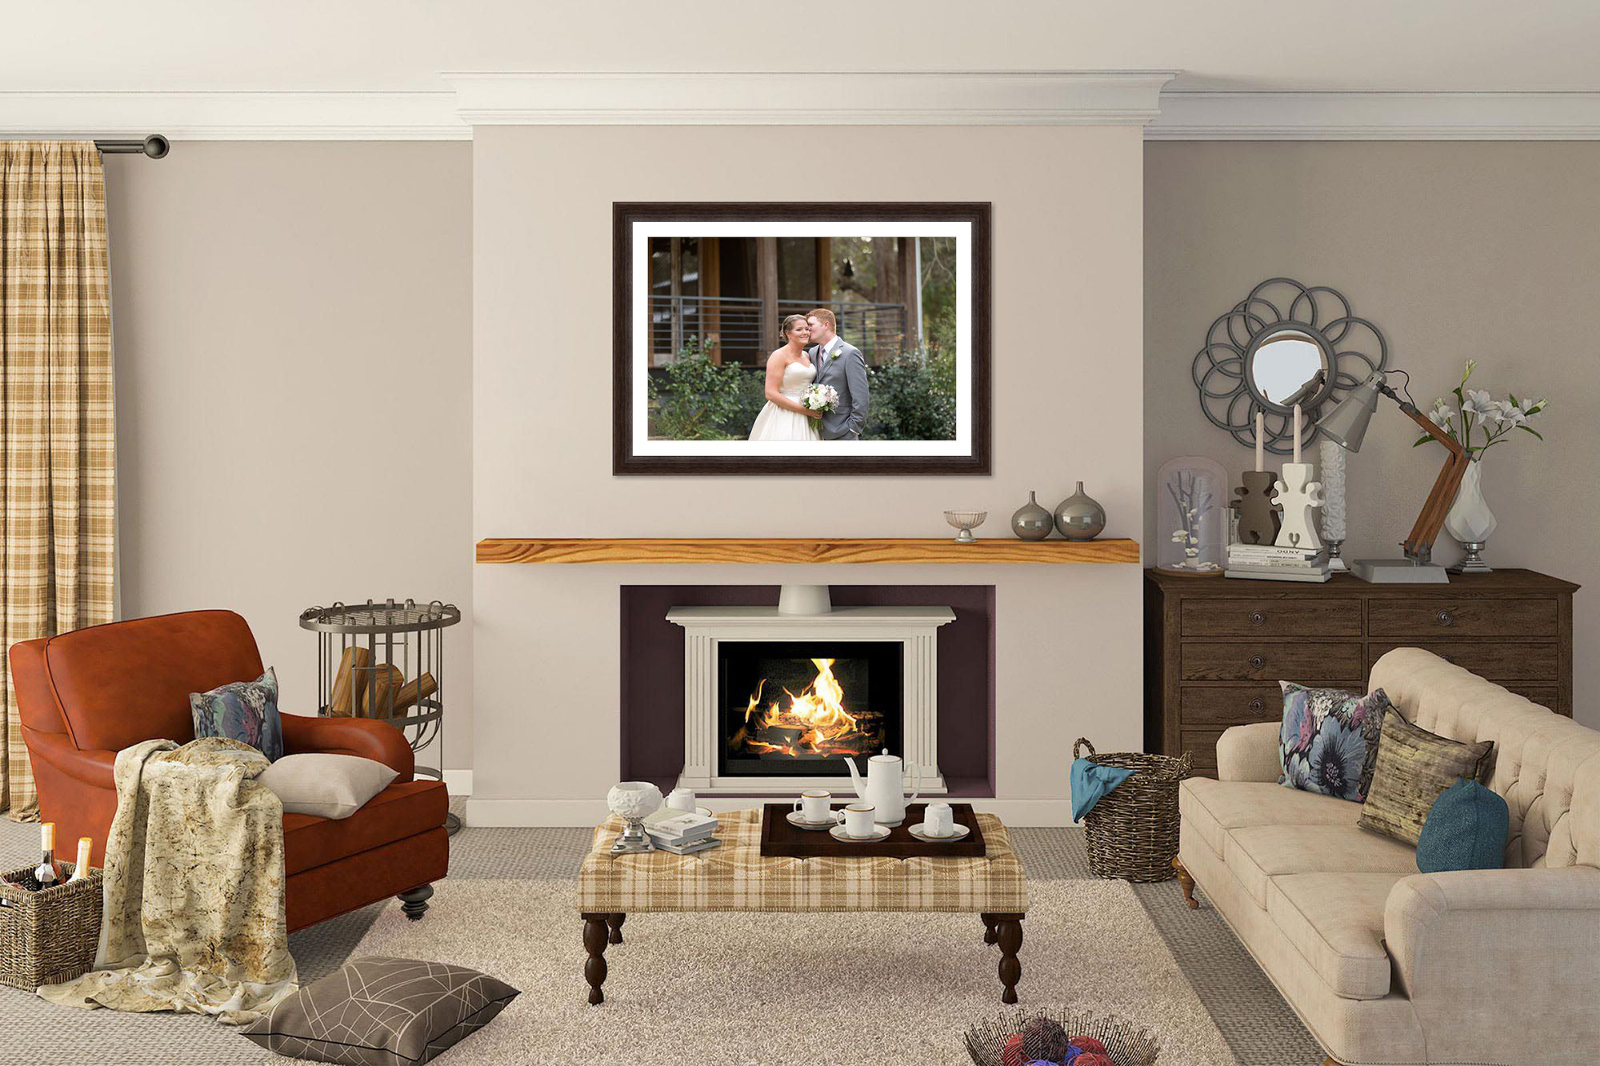 framed wall art above fireplace